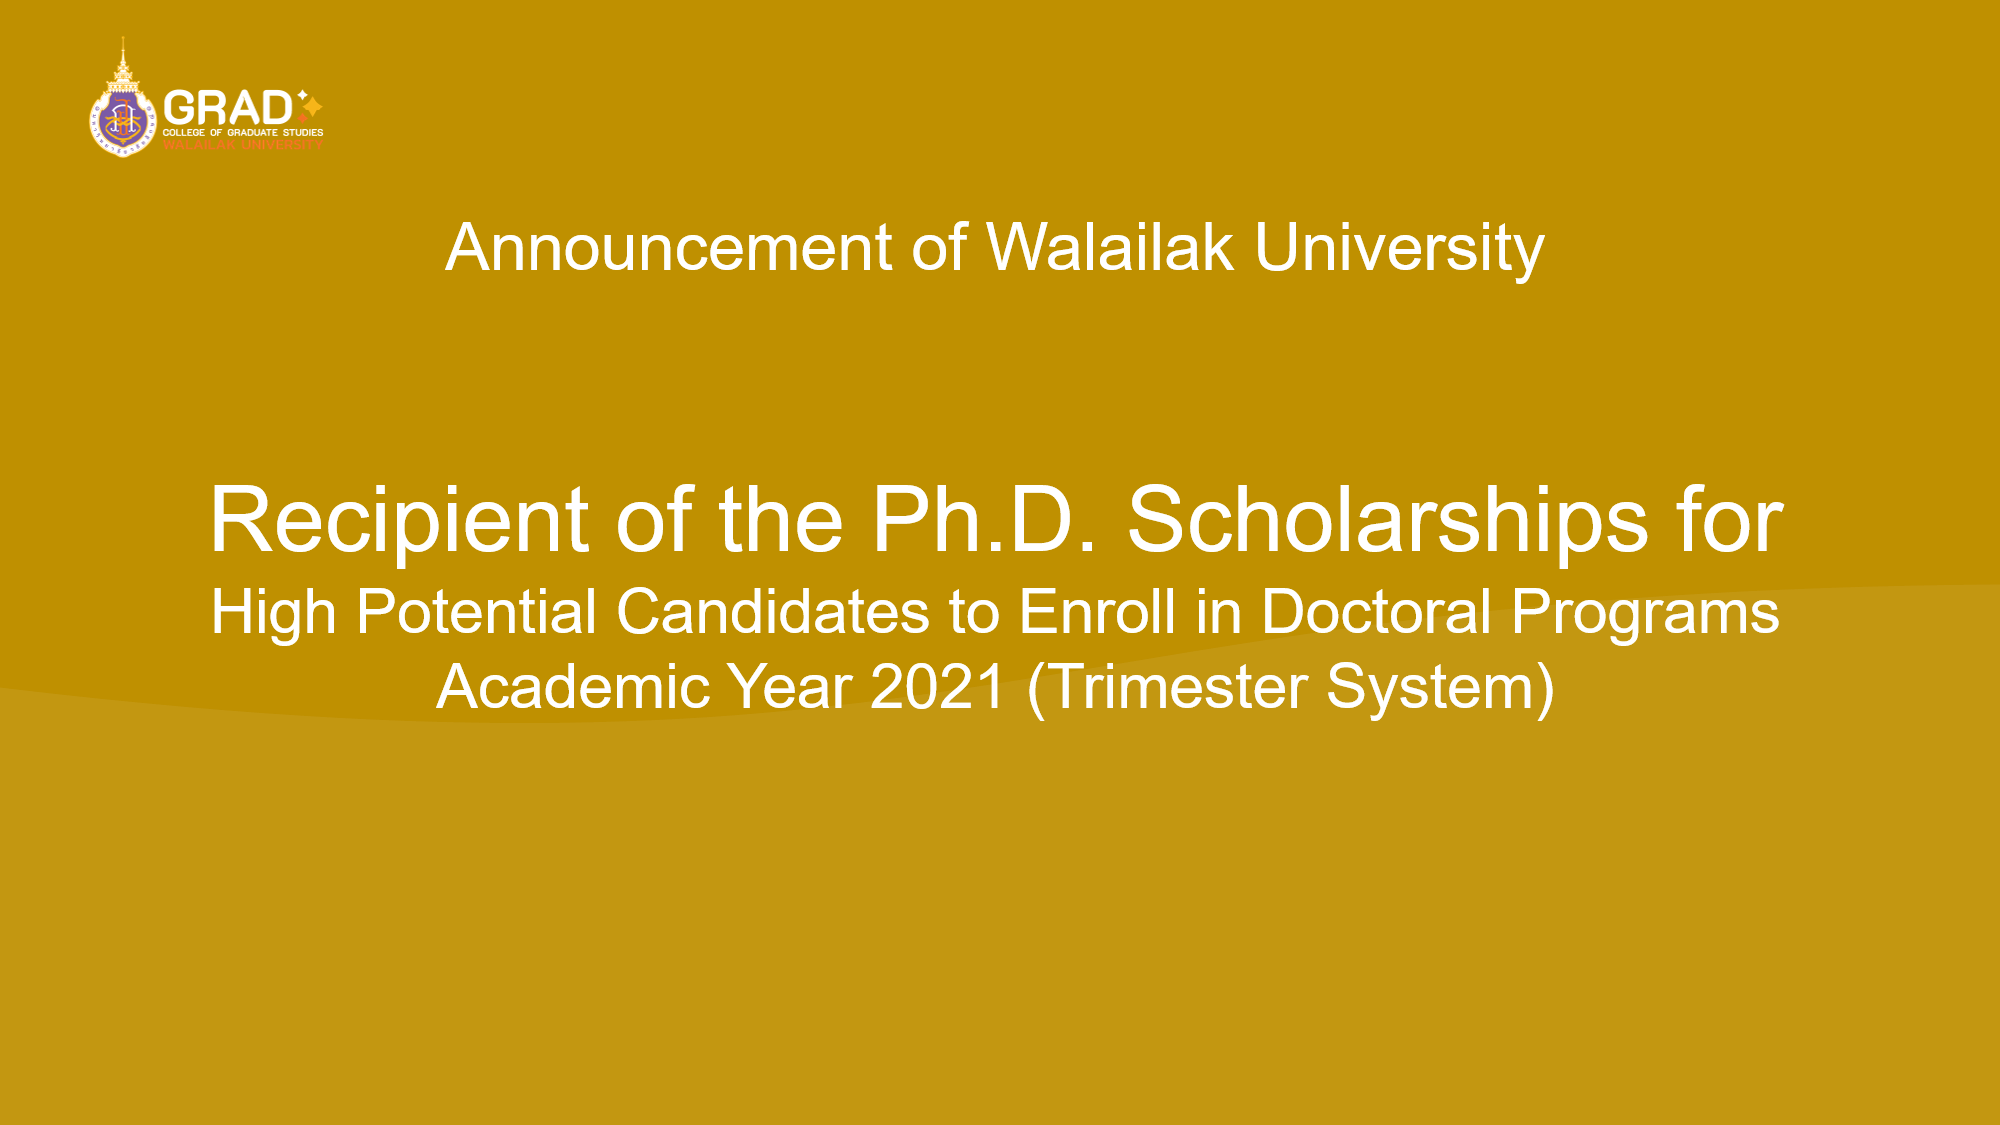 Recipient of the Ph.D. Scholarships for High Potential Candidates to Enroll in Doctoral Programs Academic Year 2021 (Trimester System)